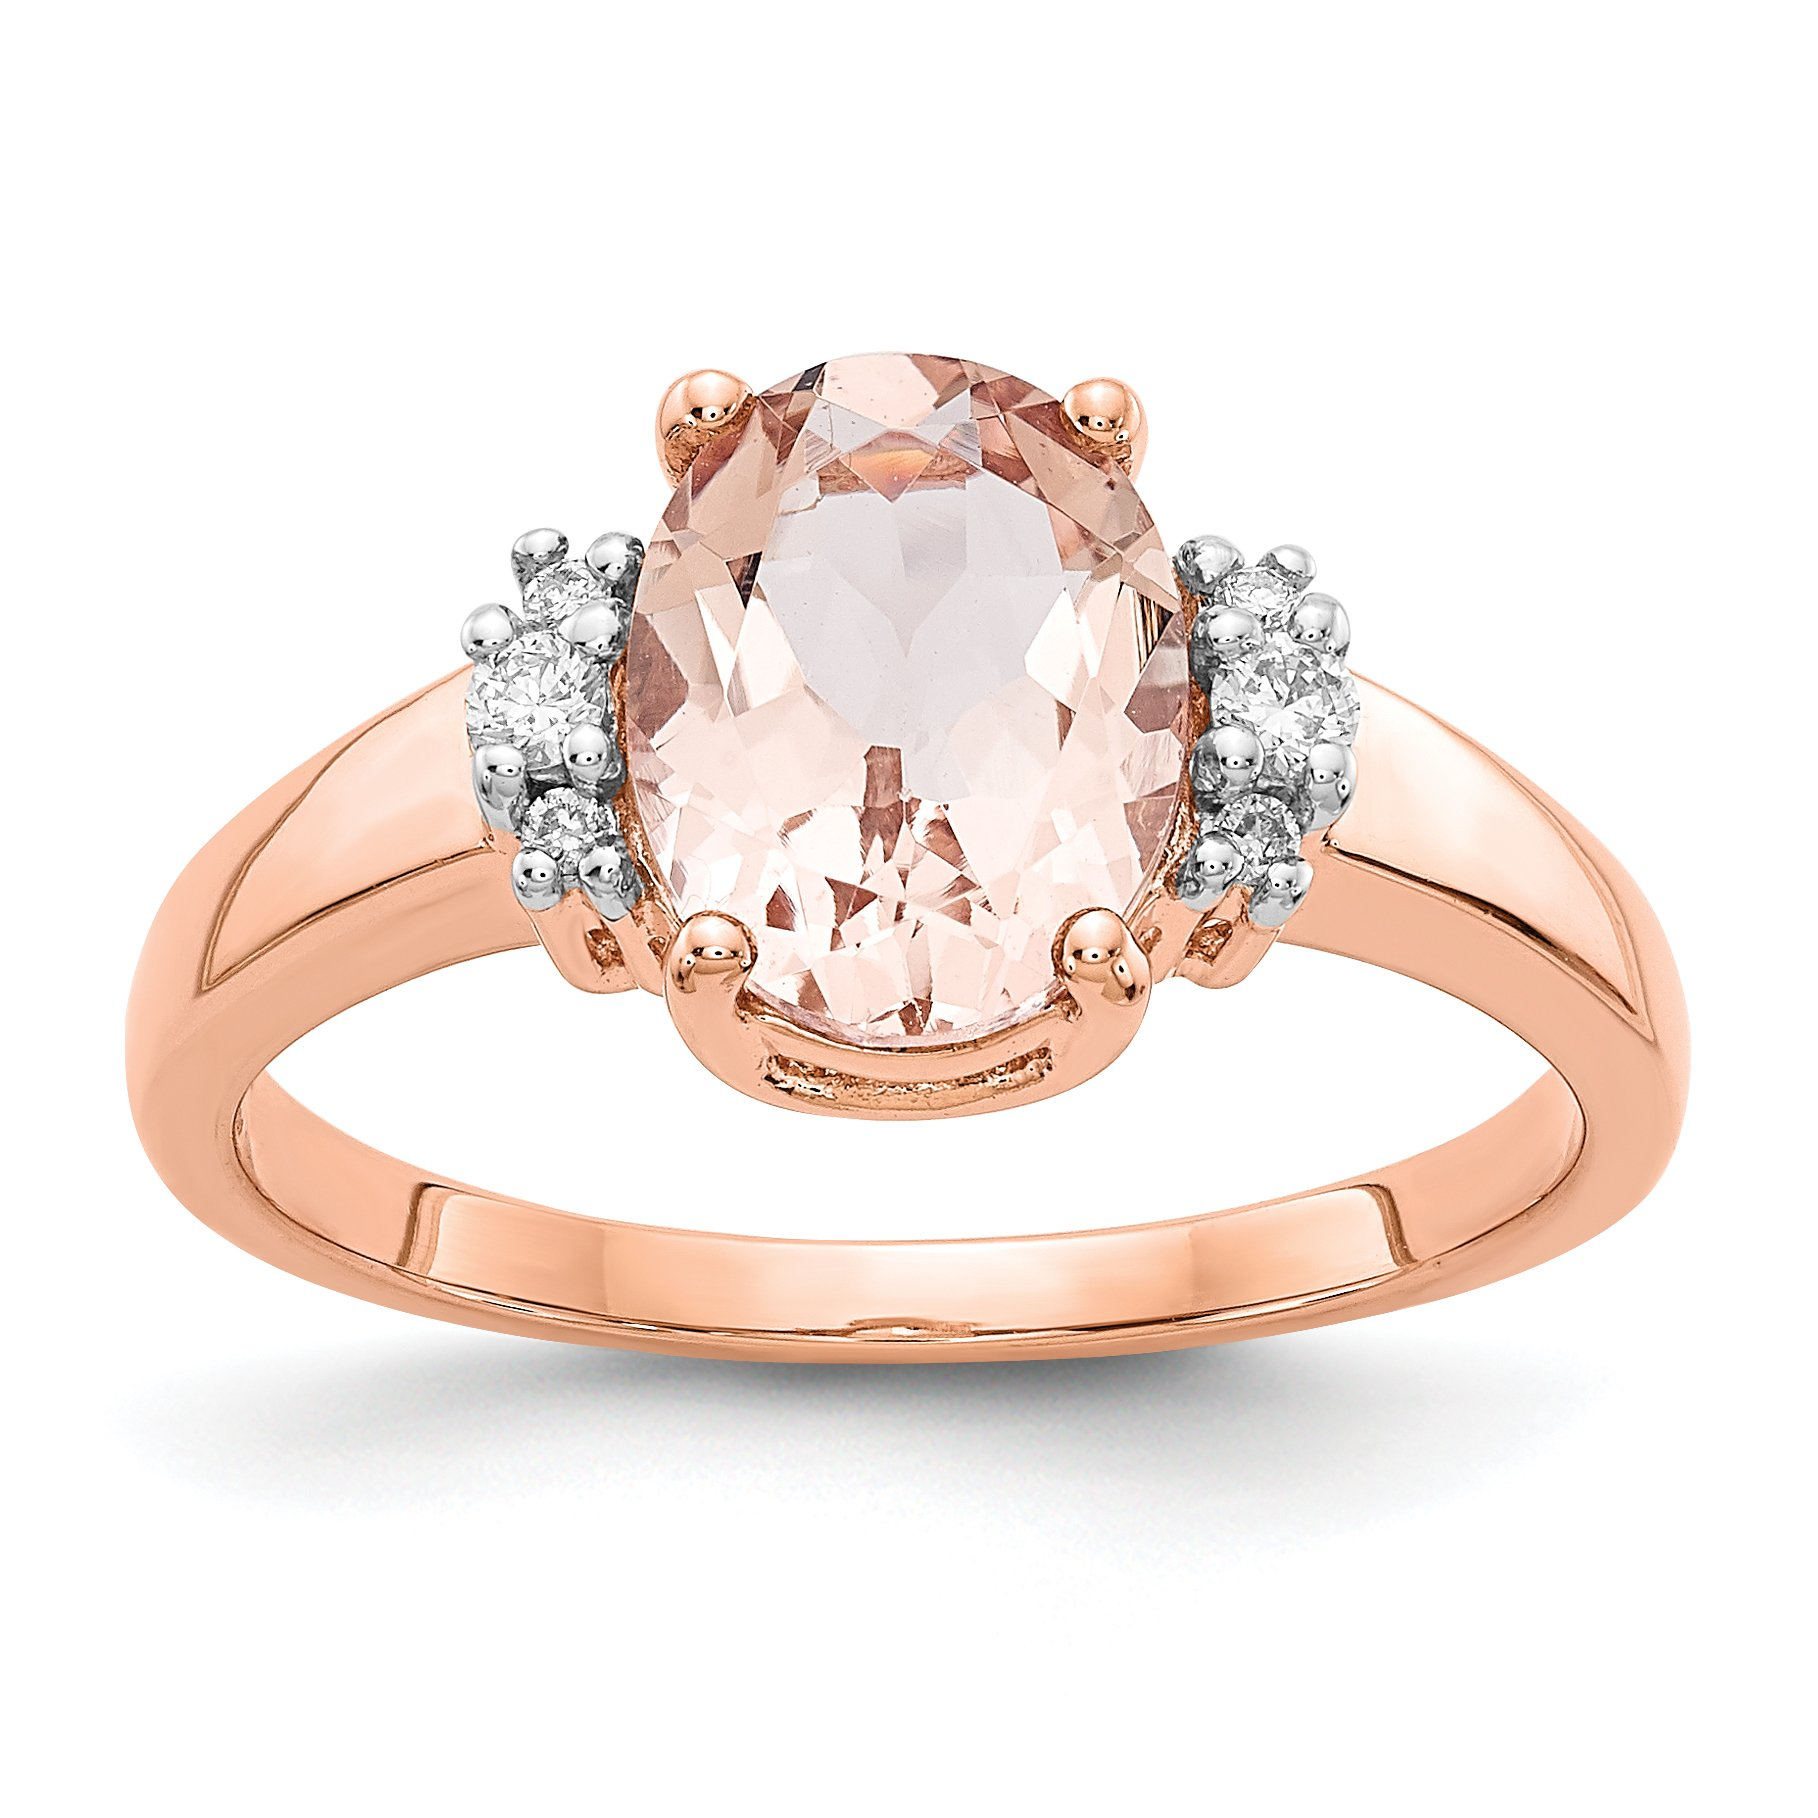 ICE CARATS 14k Rose Gold Pink Morganite Diamond Band Ring Size 7.00 Fine Jewelry Gift Set For Women Heart